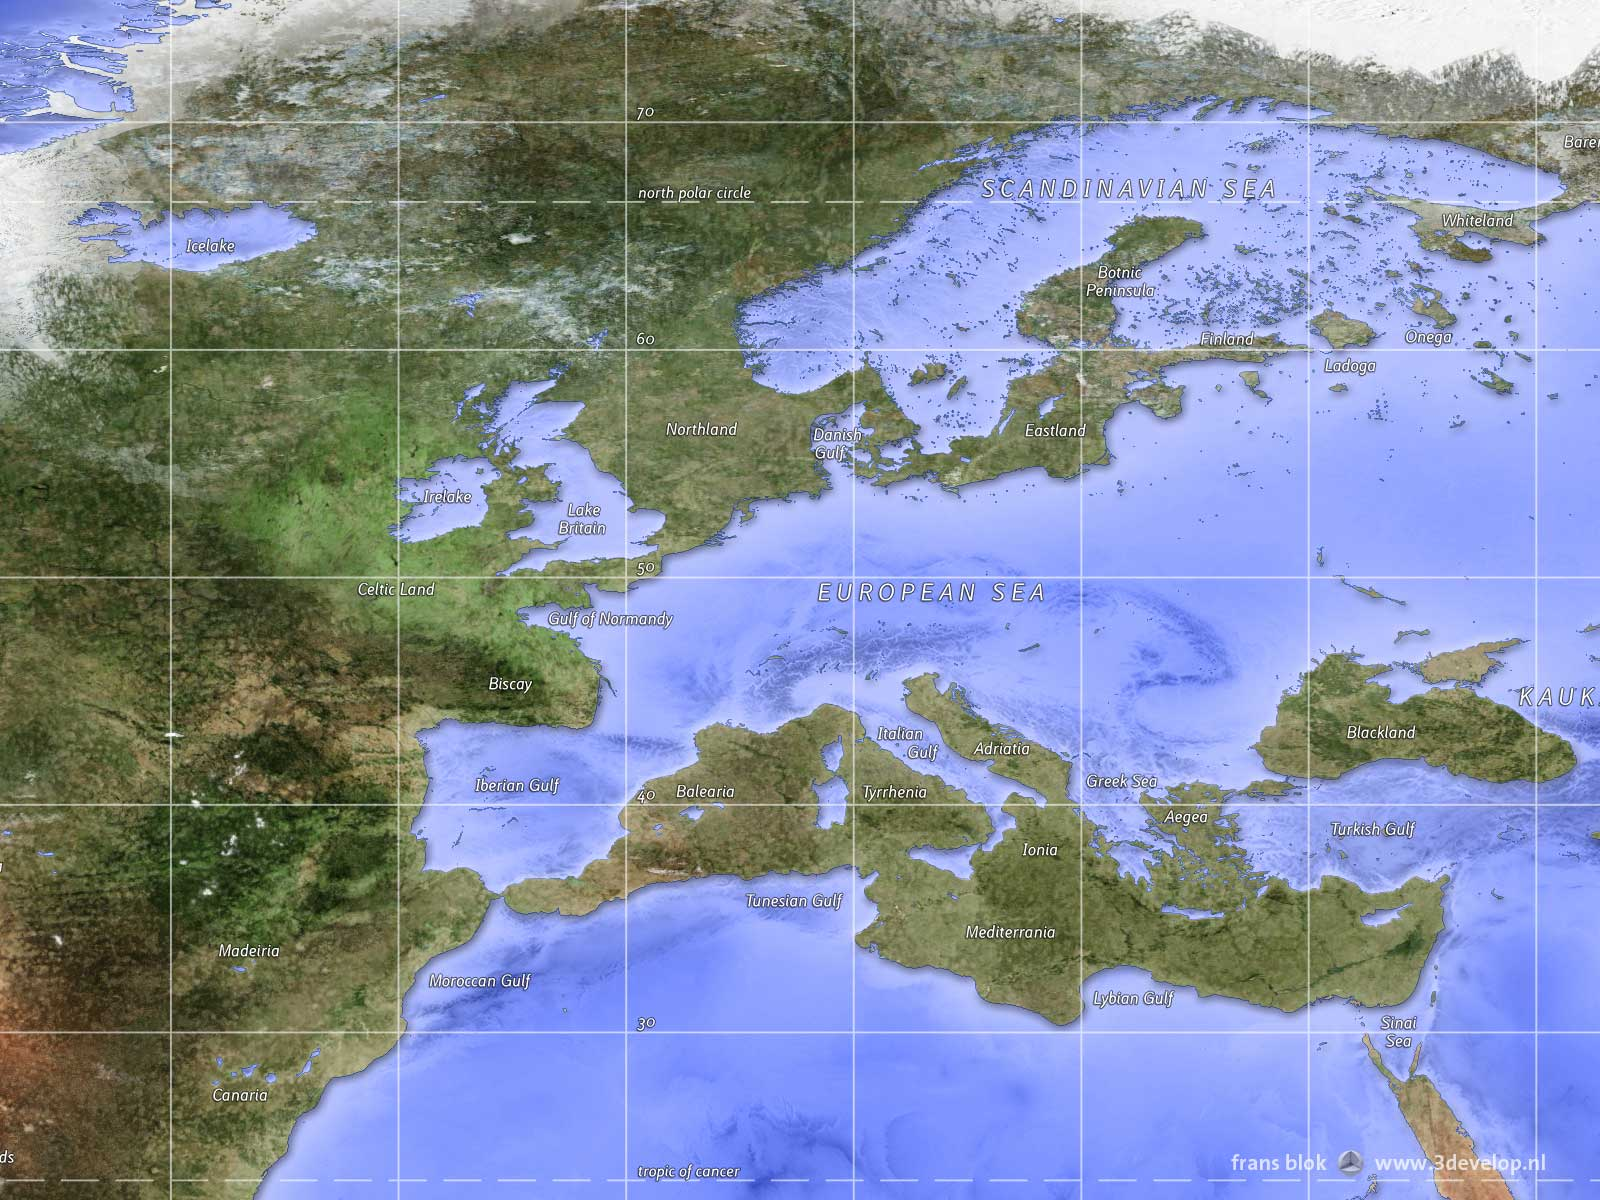 The inverted world map variations on a blue marble 3develop fragment of the inverted worldmap with the area around the european sea gumiabroncs Images